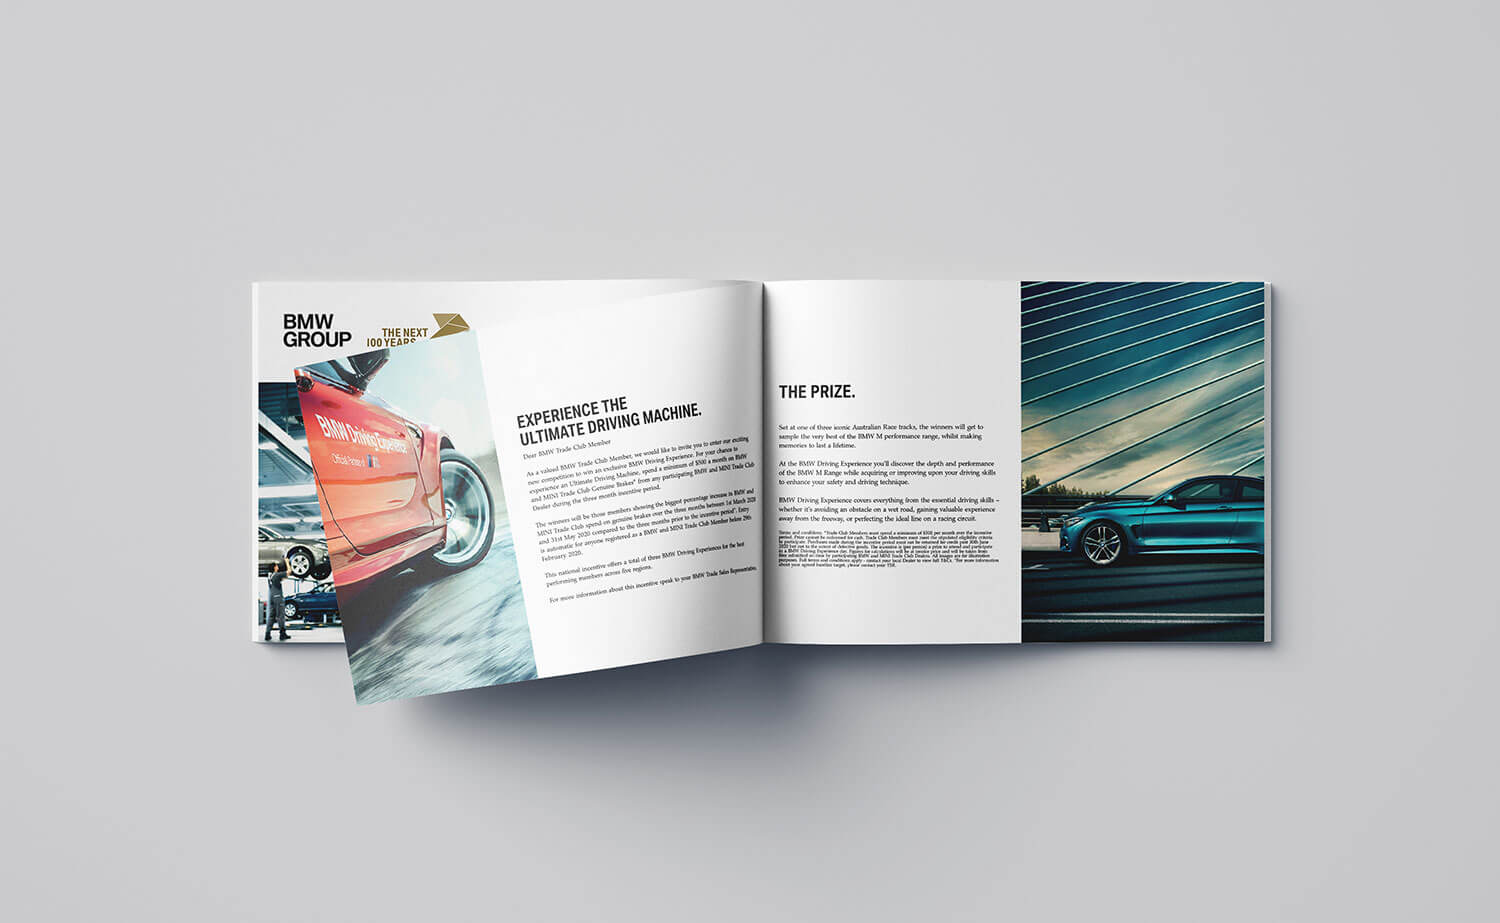 Bmw-marketing-designs